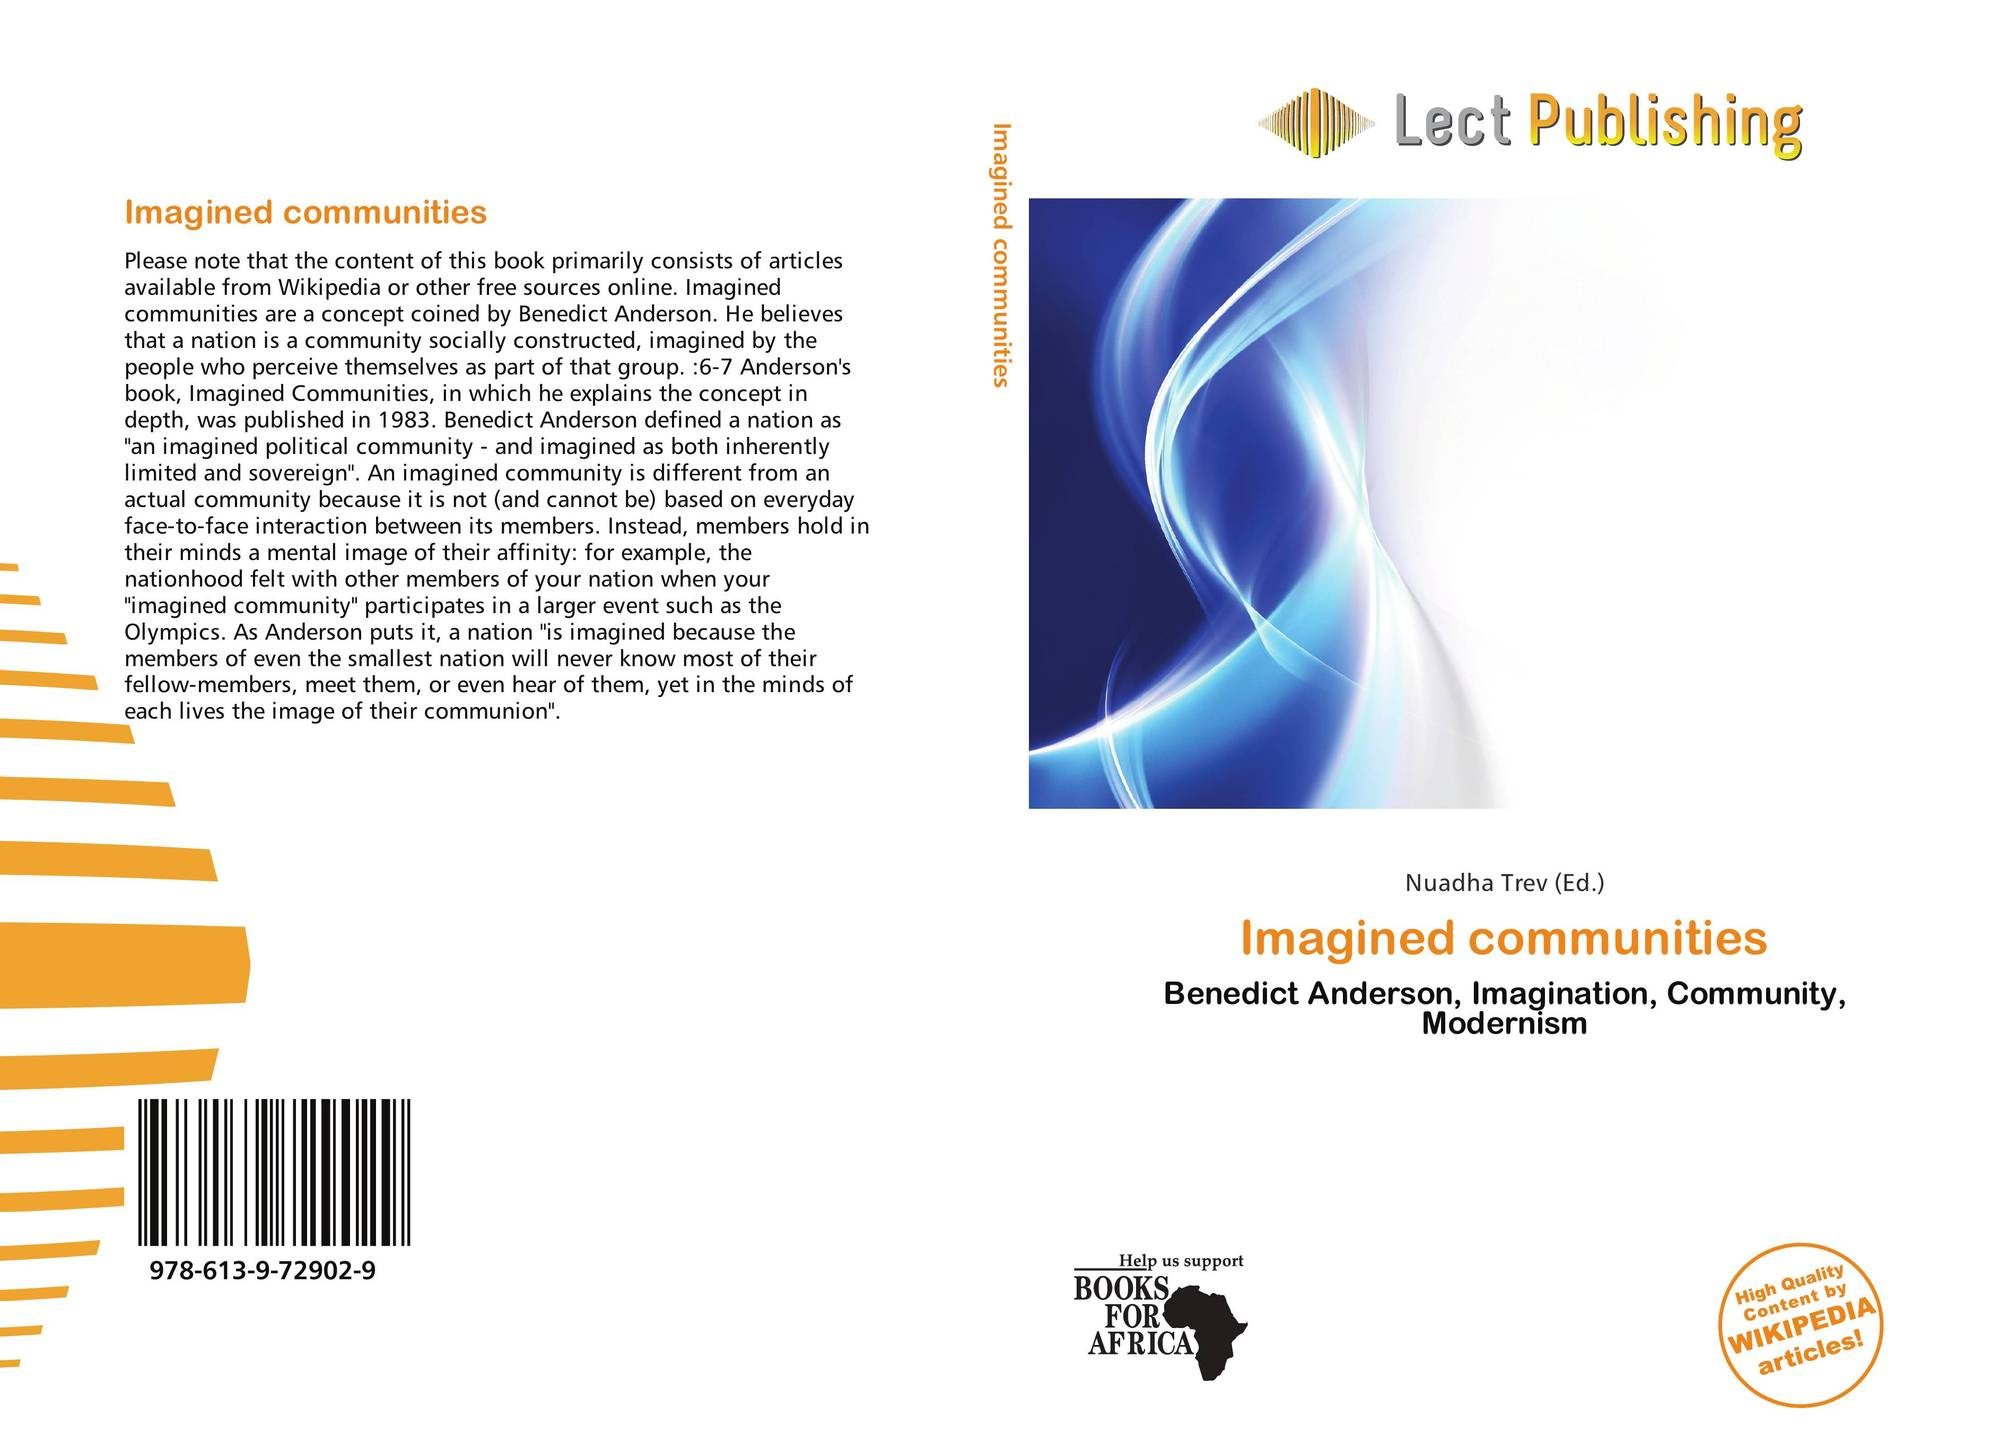 Imagined communities thesis